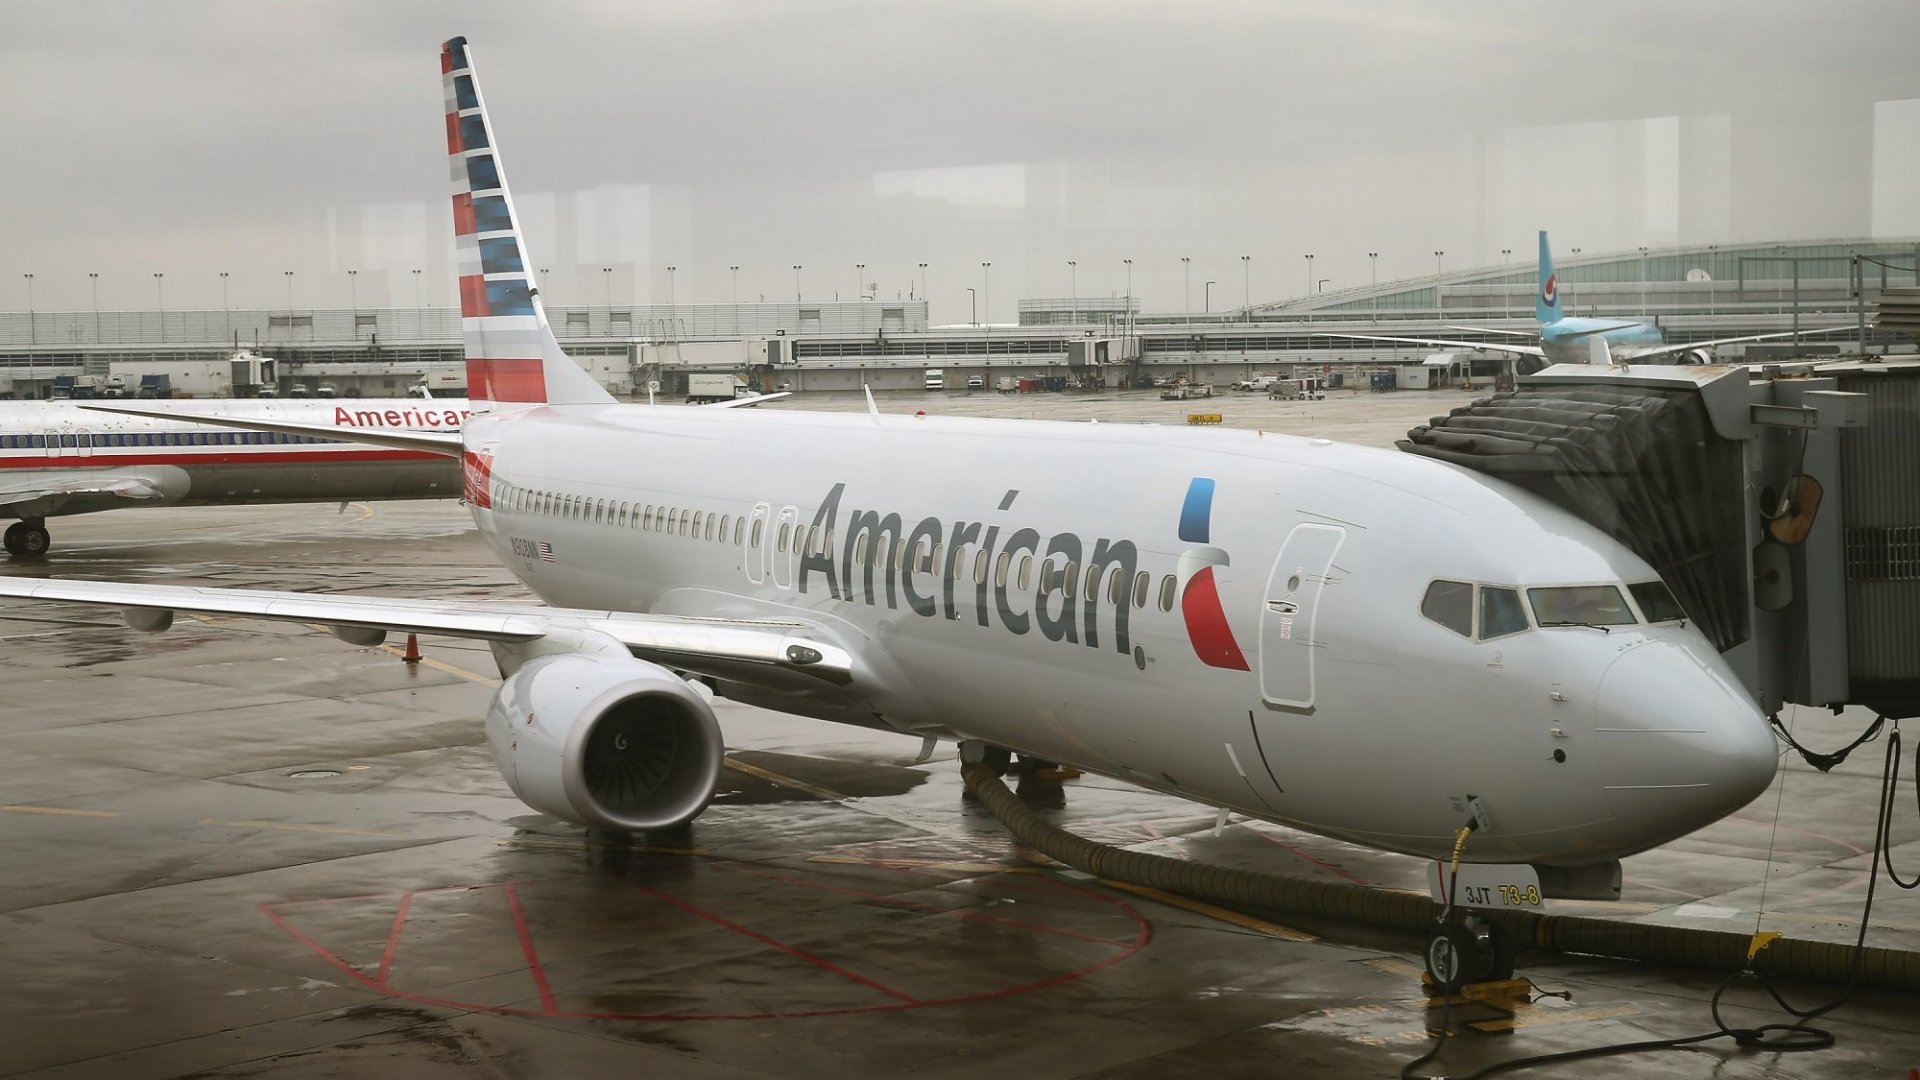 American Airlines Passengers: This Is the Sneaky New Way to Board Early Every Time